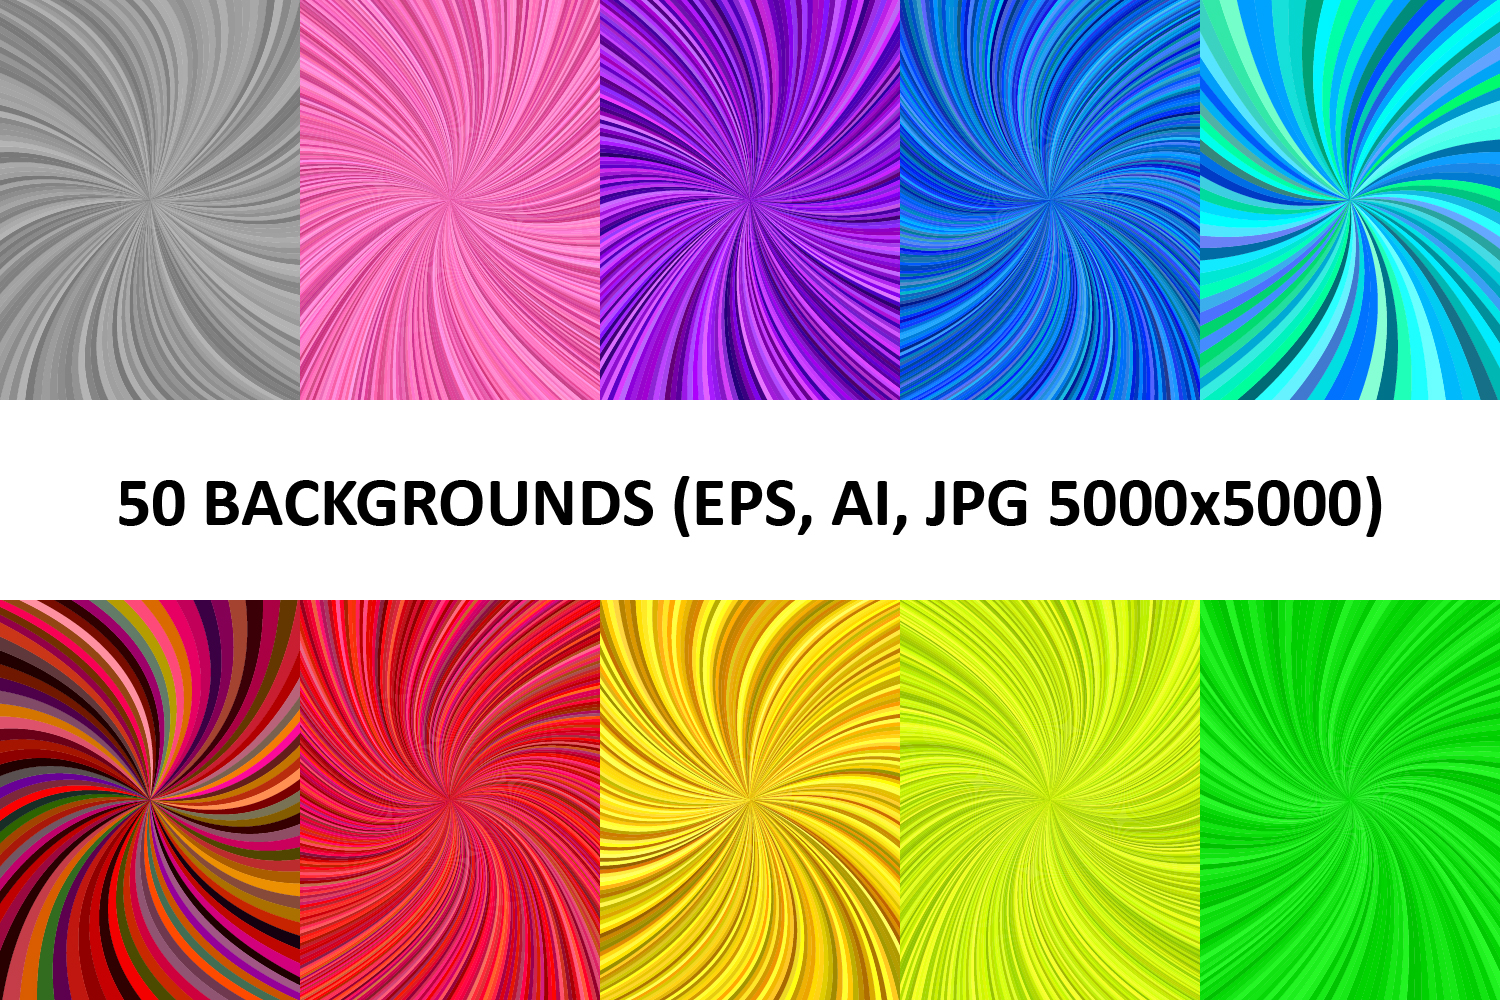 50 Spiral Backgrounds AI, EPS, JPG 5000x5000 example image 1